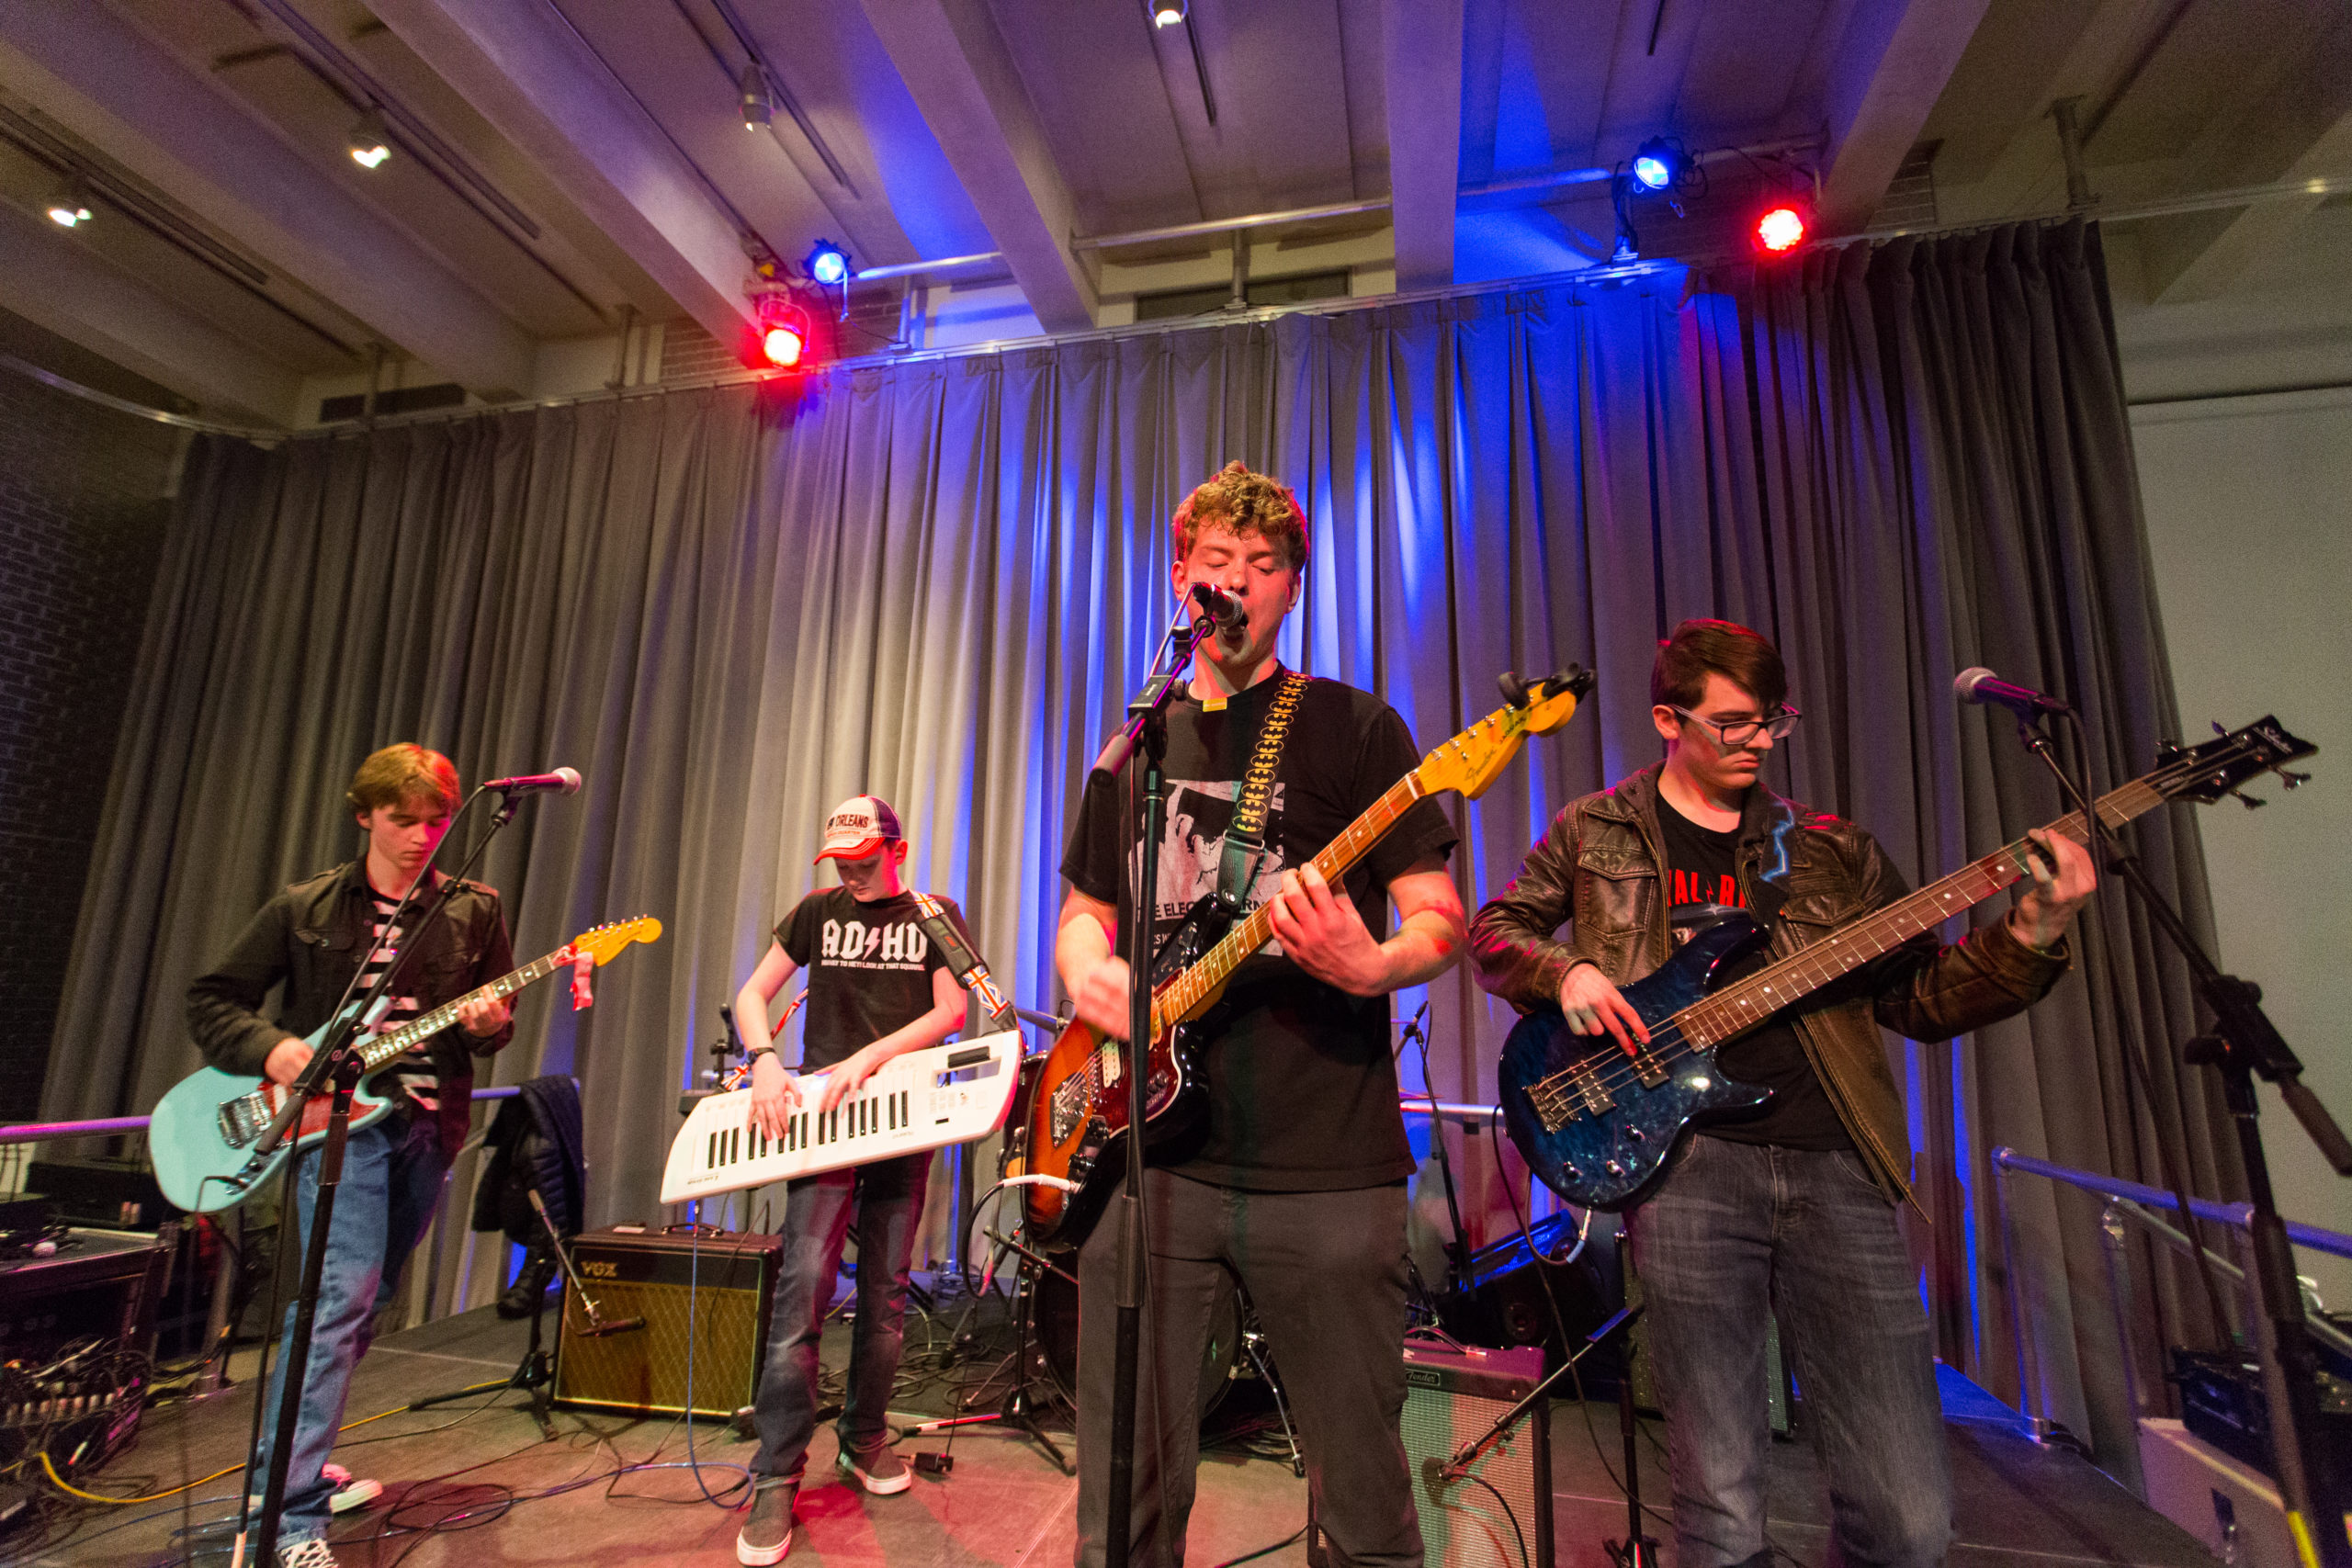 Four young male musicians perform on stage. Each one holding a different instrument - guitar, keytar, guitar and bass.